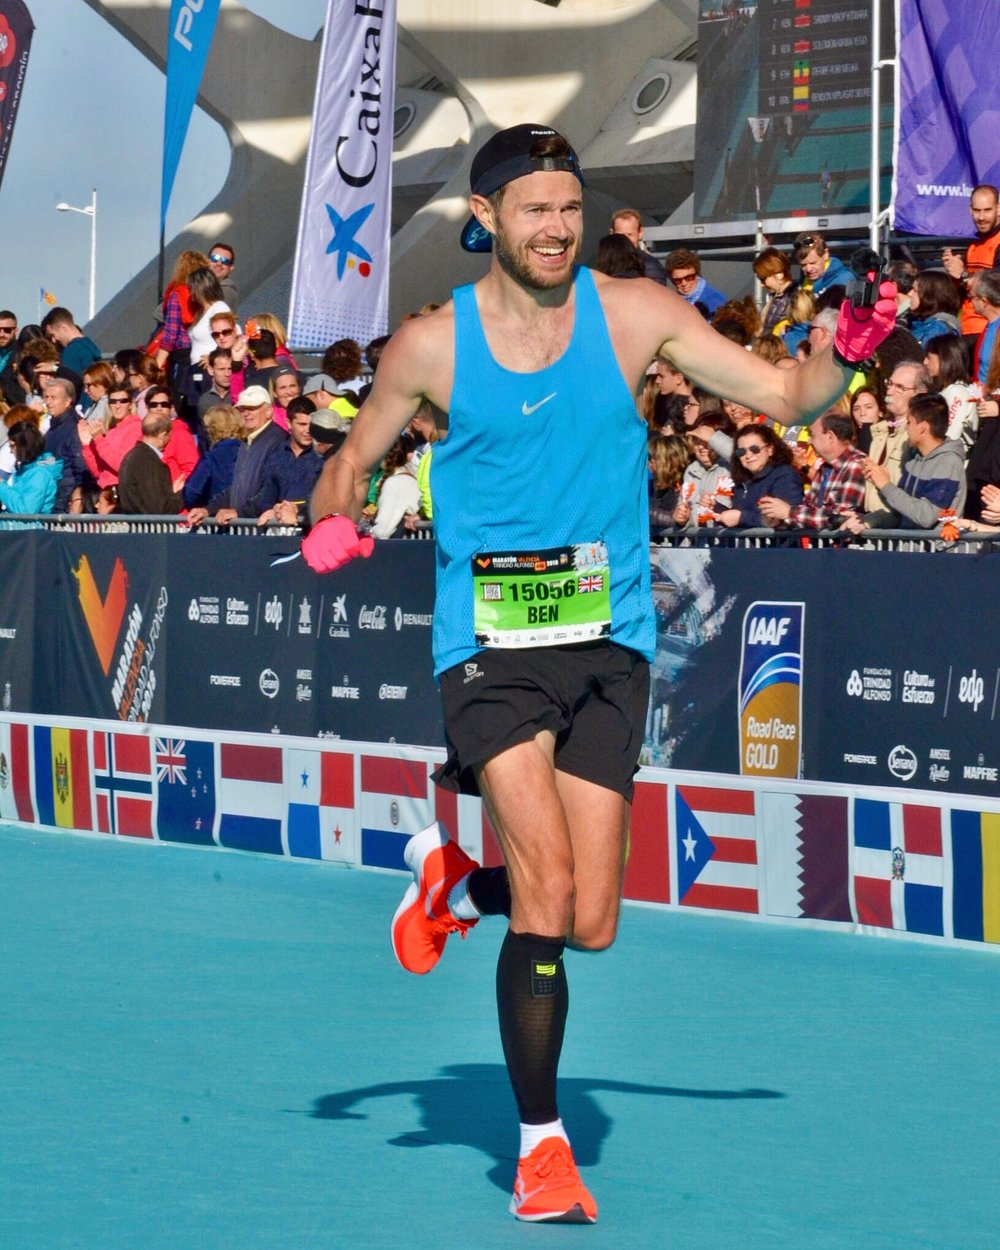 2:25 at the Valencia Marathon.. what an incredible day!